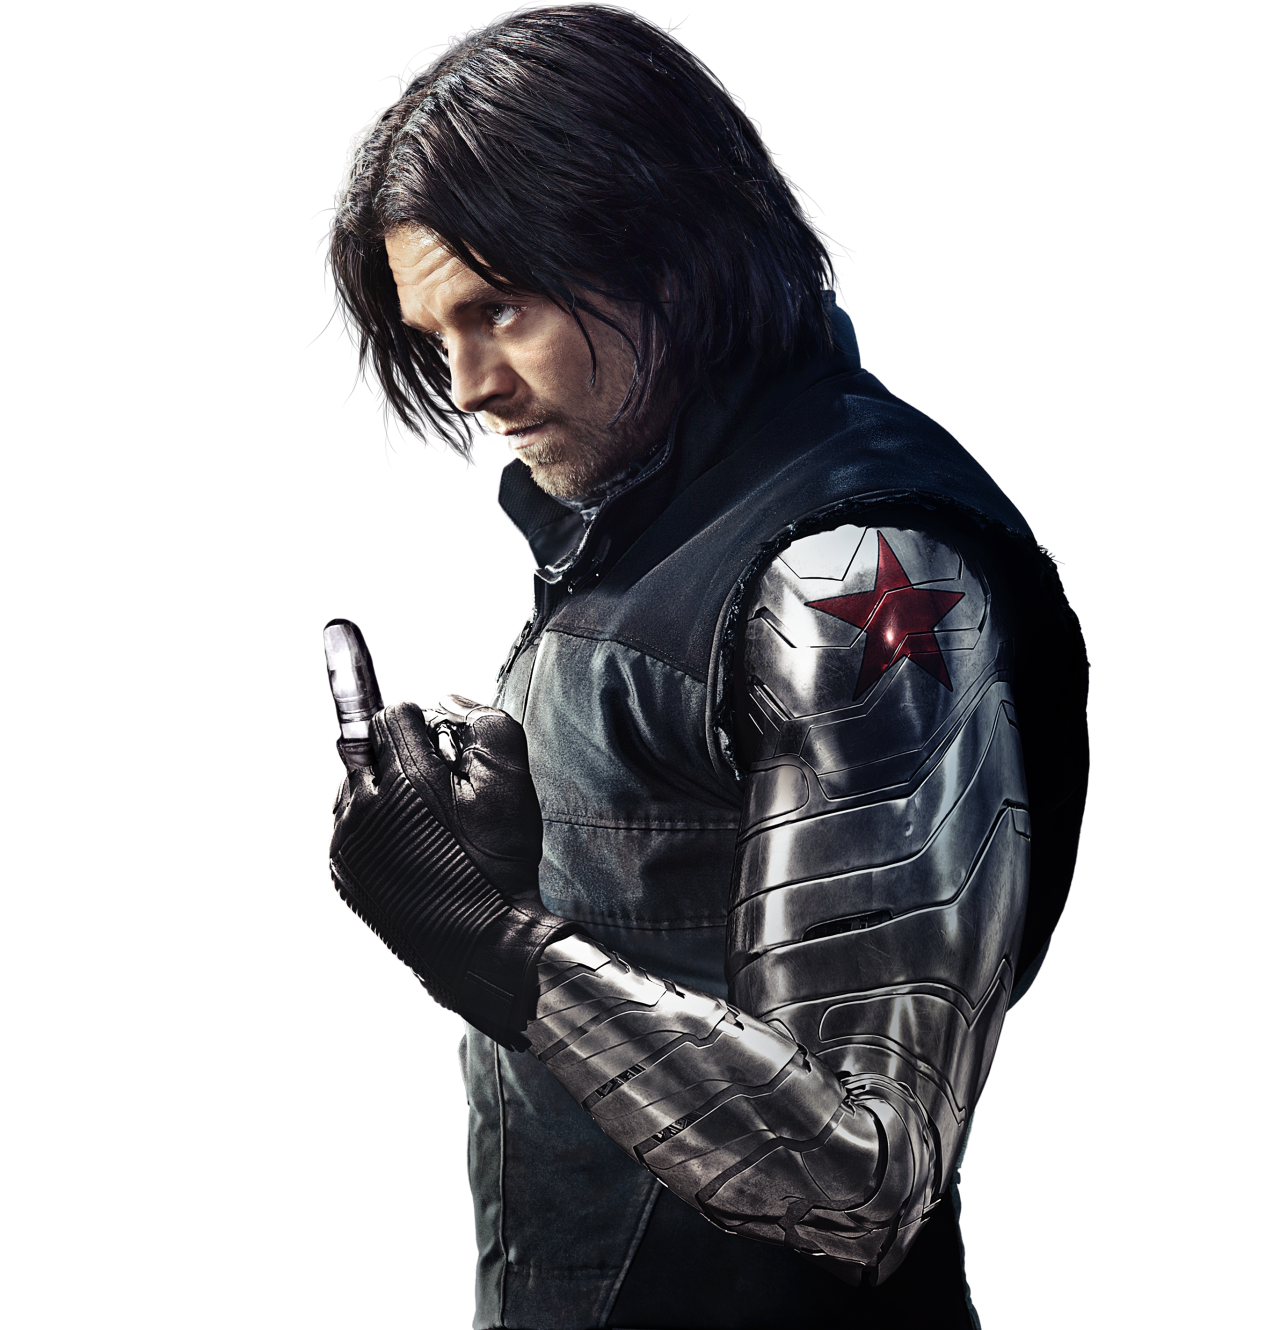 Steve transparent bucky. Barnes captain america the